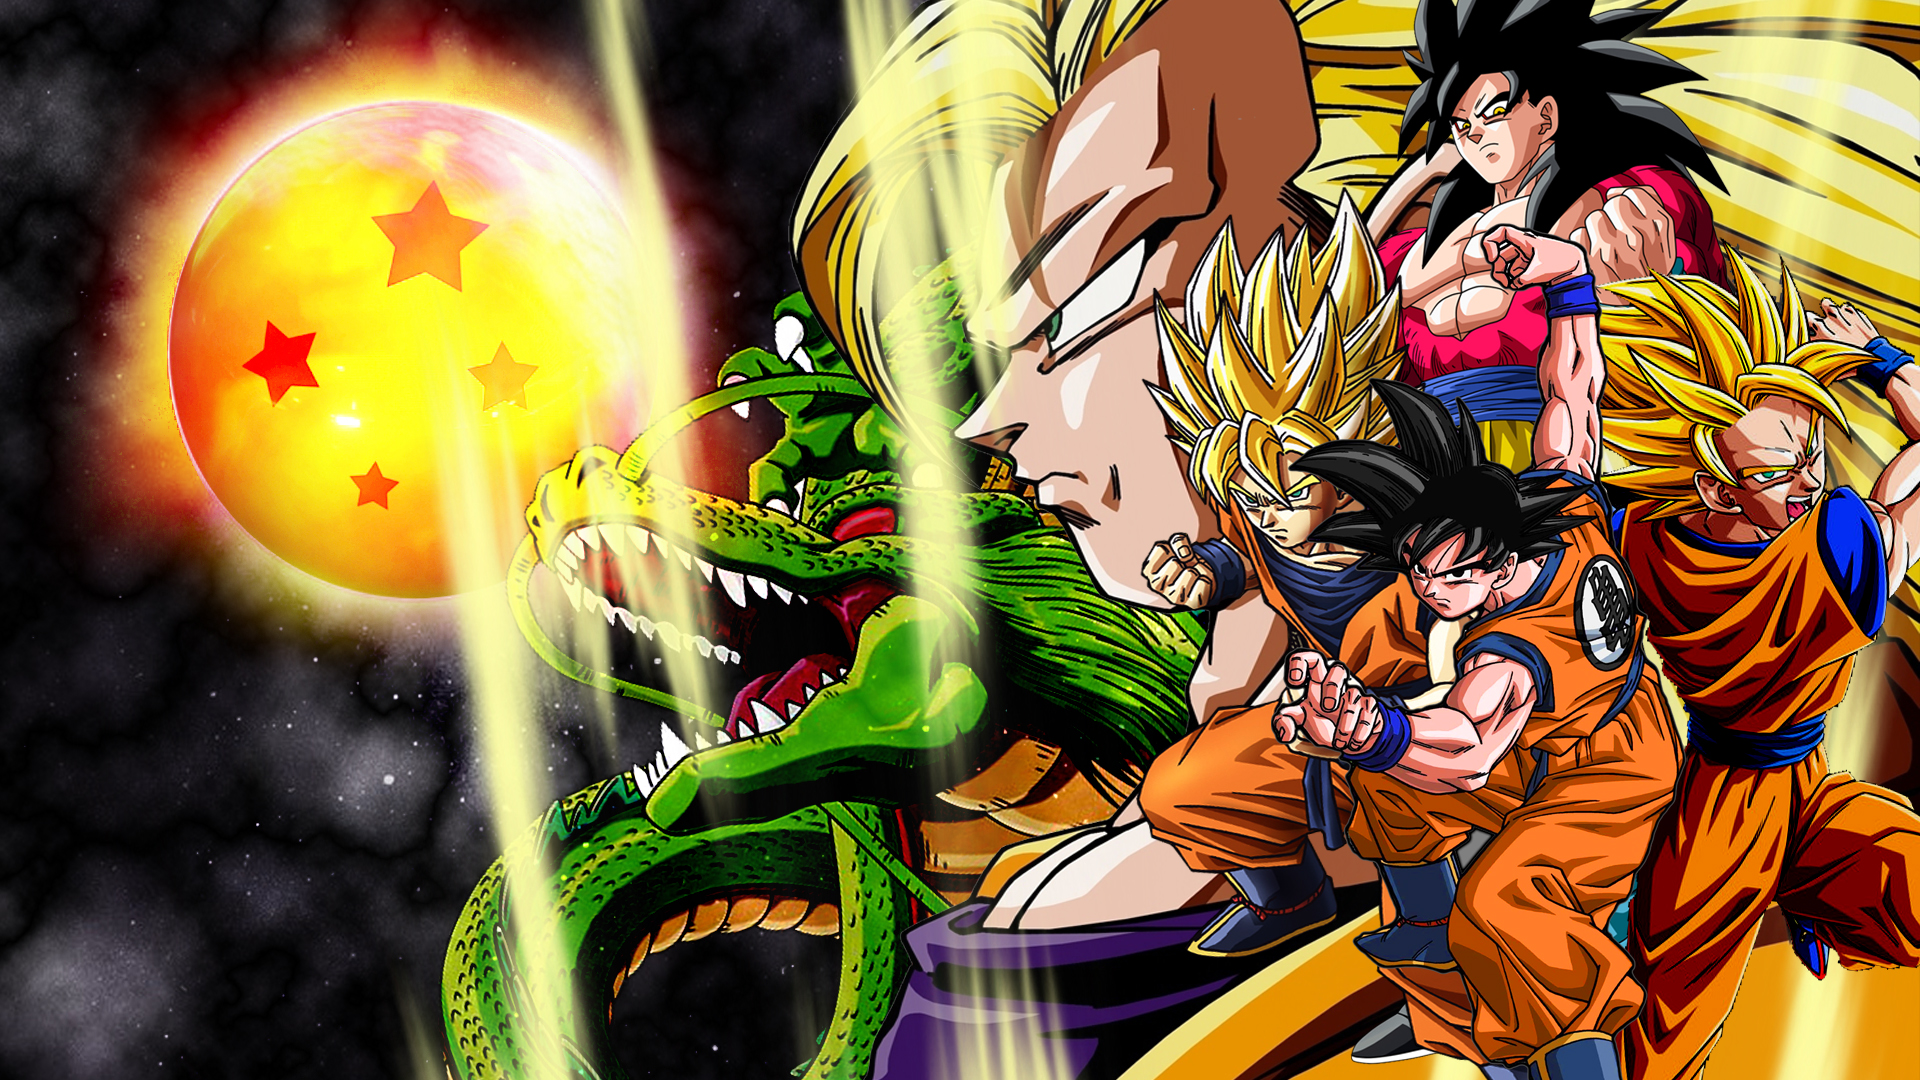 dbz wallpaper 1920x1080 75213